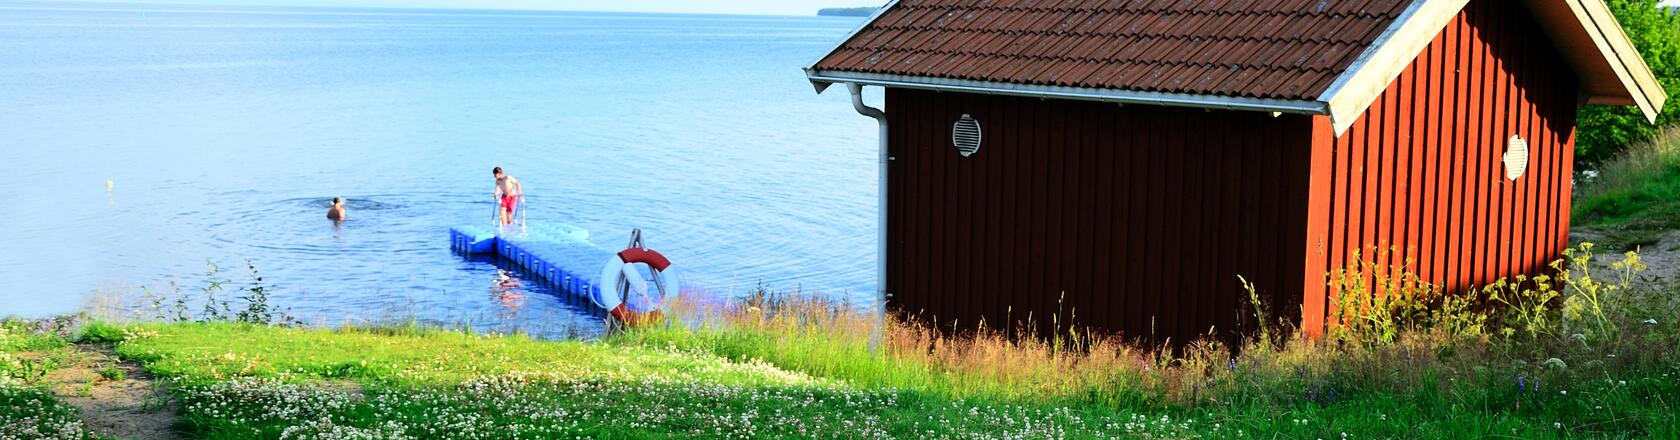 Sauvo in Finland - Rent a holiday home  with DanCenter